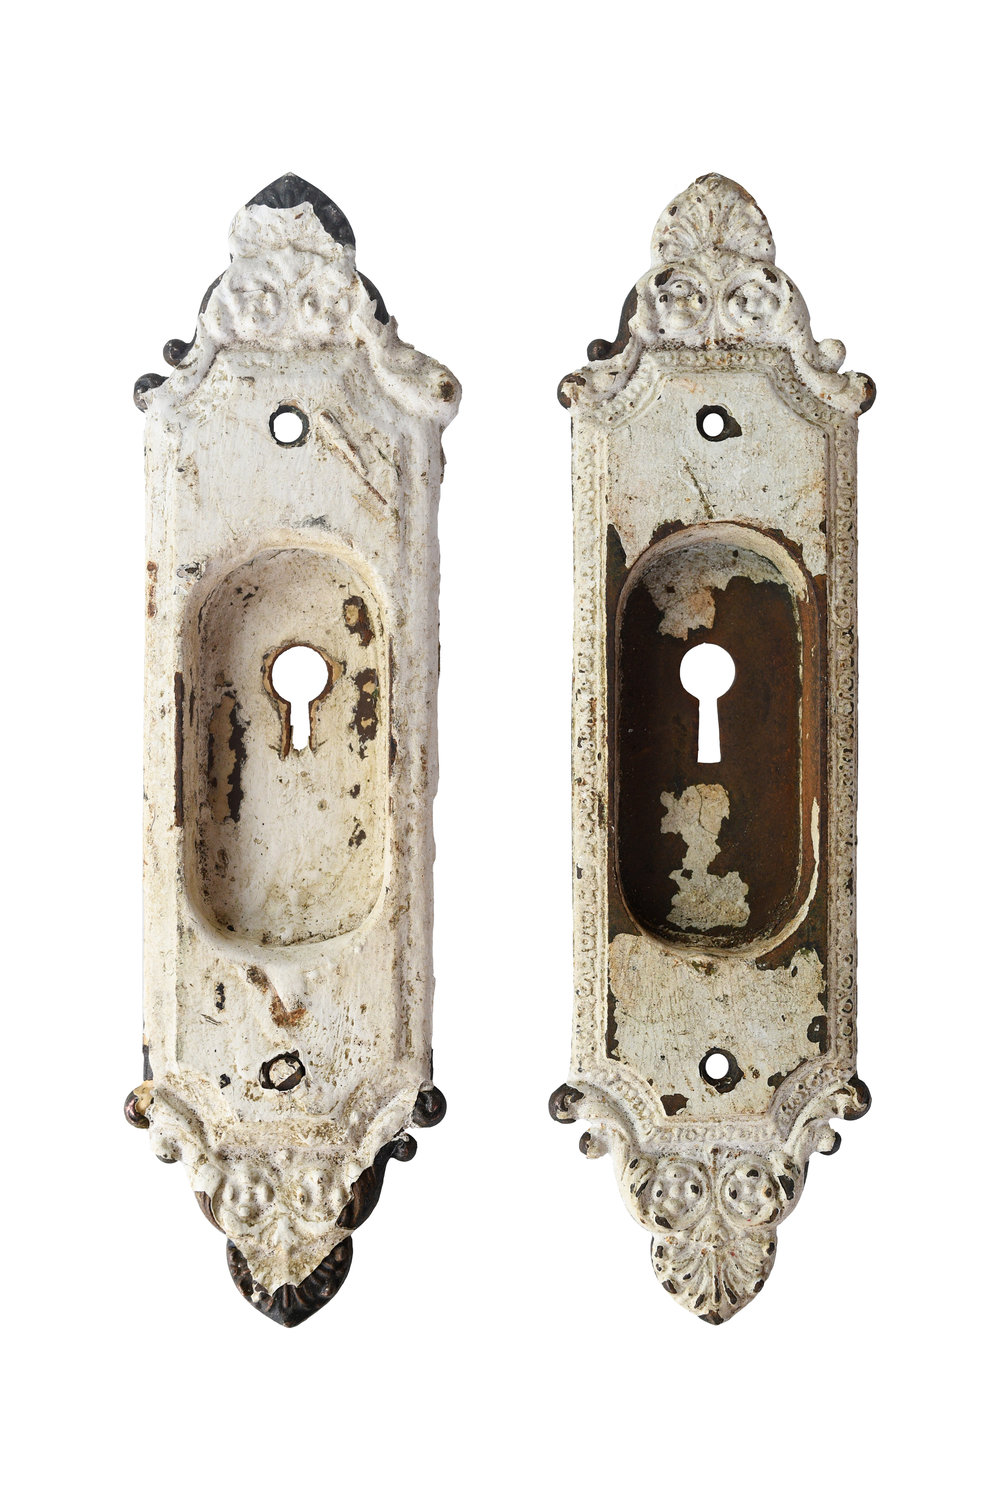 VICTORIAN INSET POCKET DOOR HANDLE AA# H20187   1 pair available $64.00 for pair